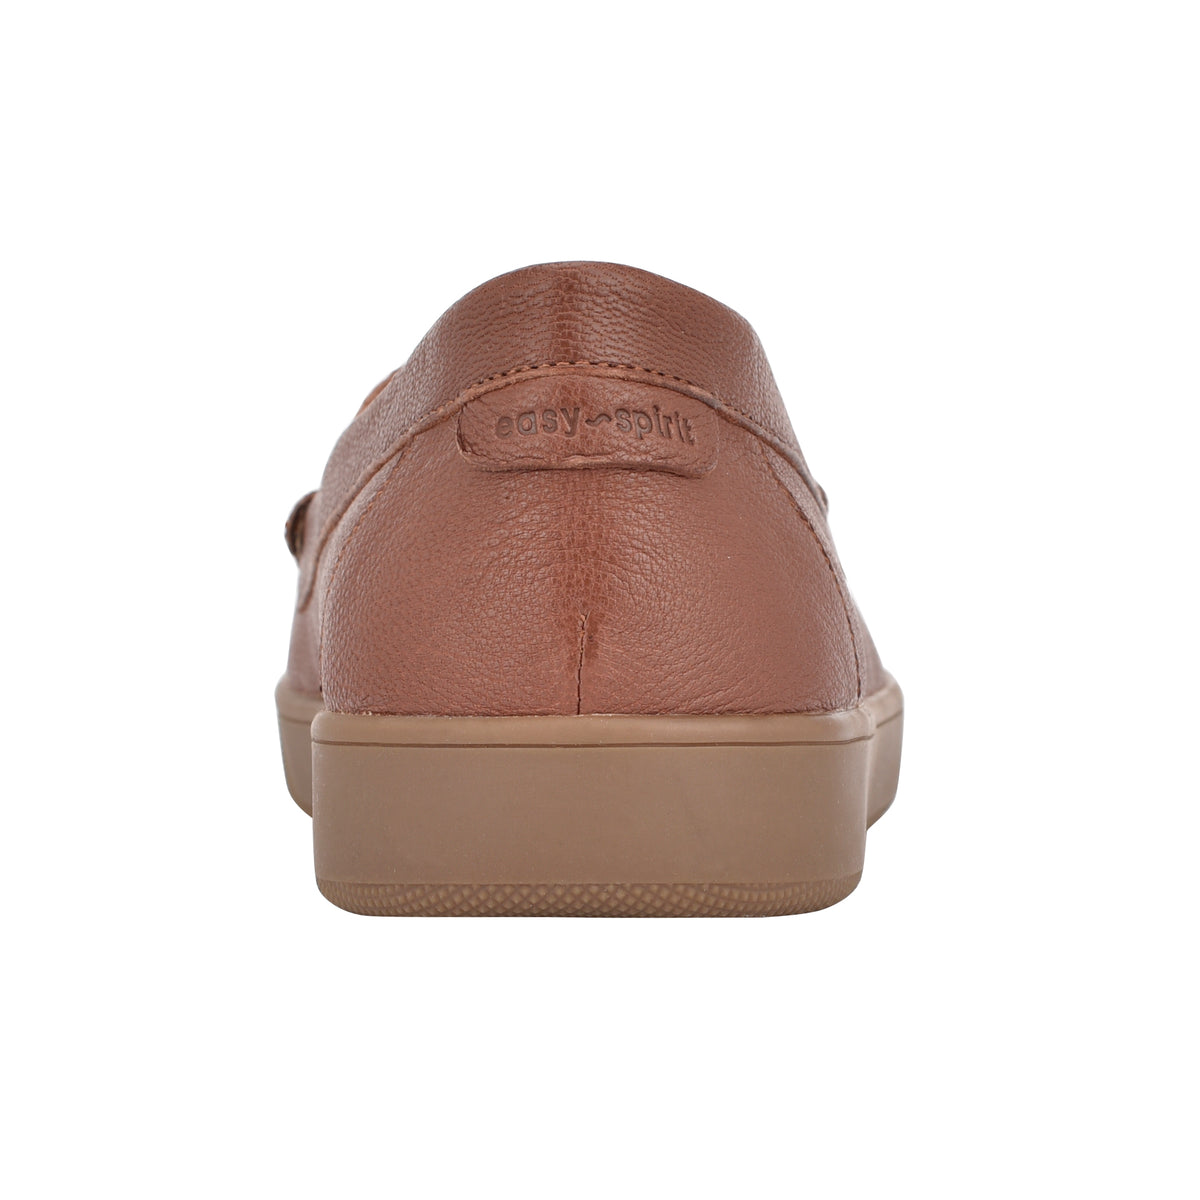 board-casual-slip-on-shoes-in-brown-leather